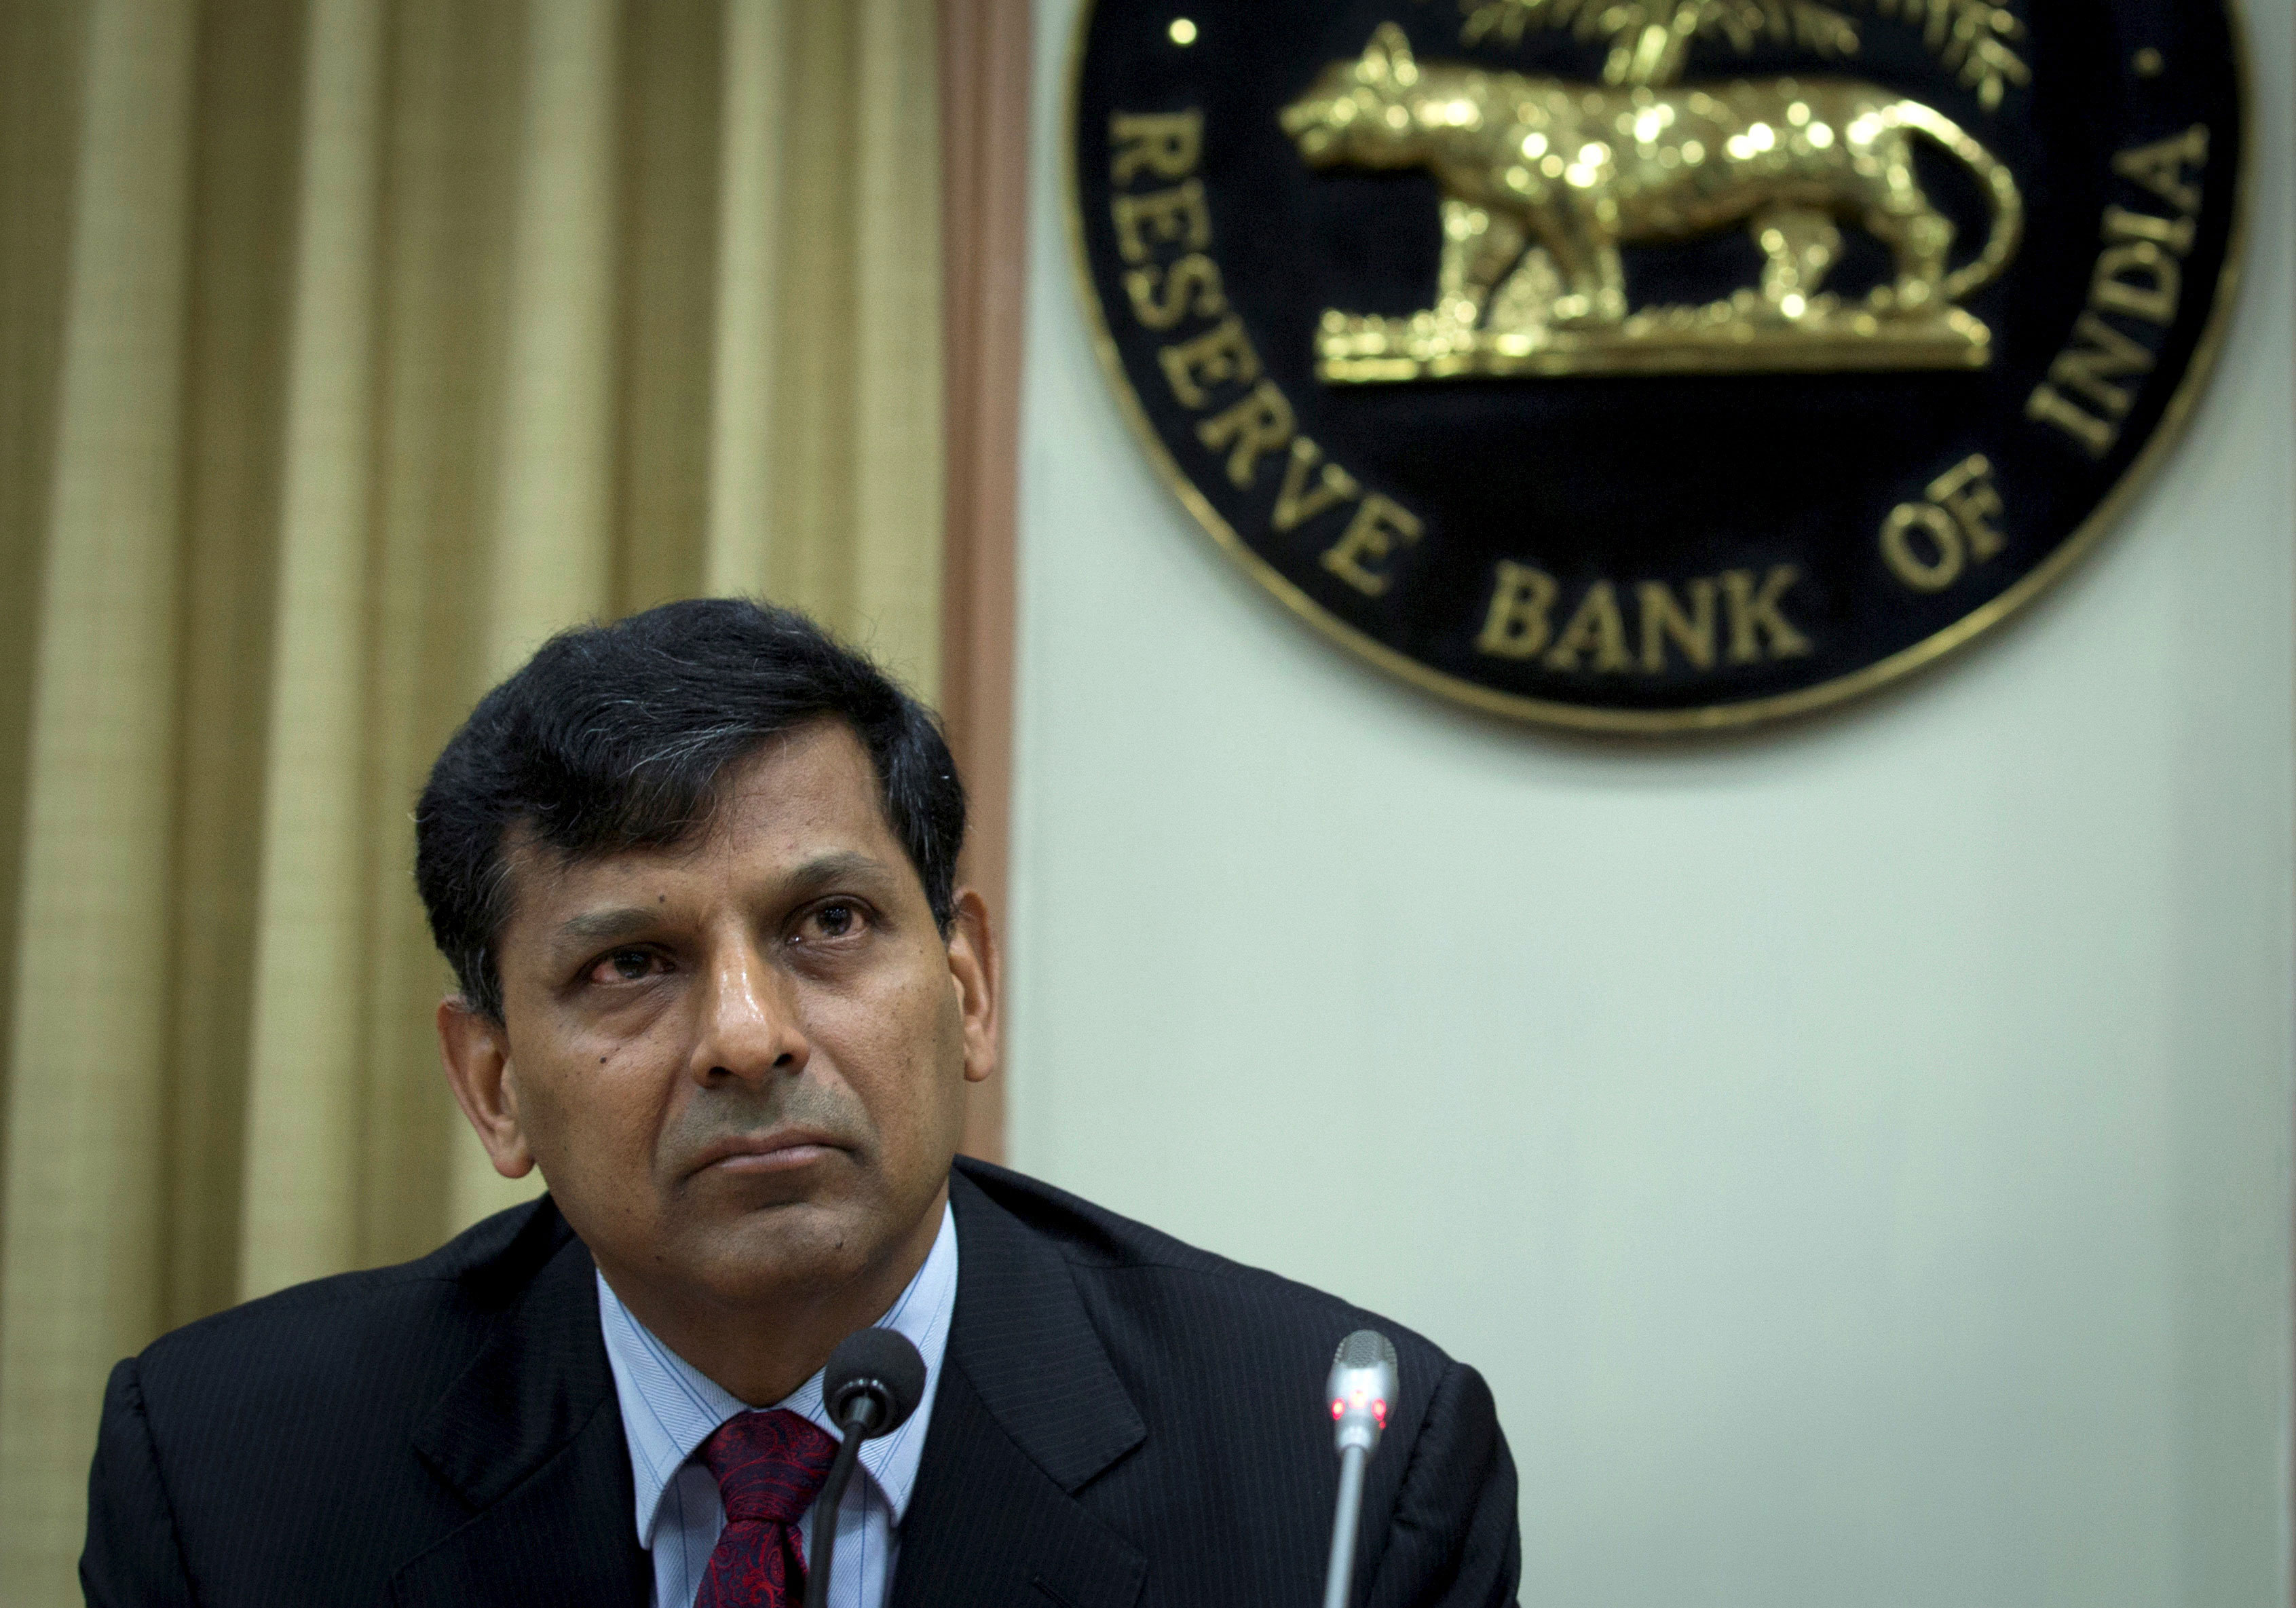 The government to launch new overnight inter-bank benchmark lending rate